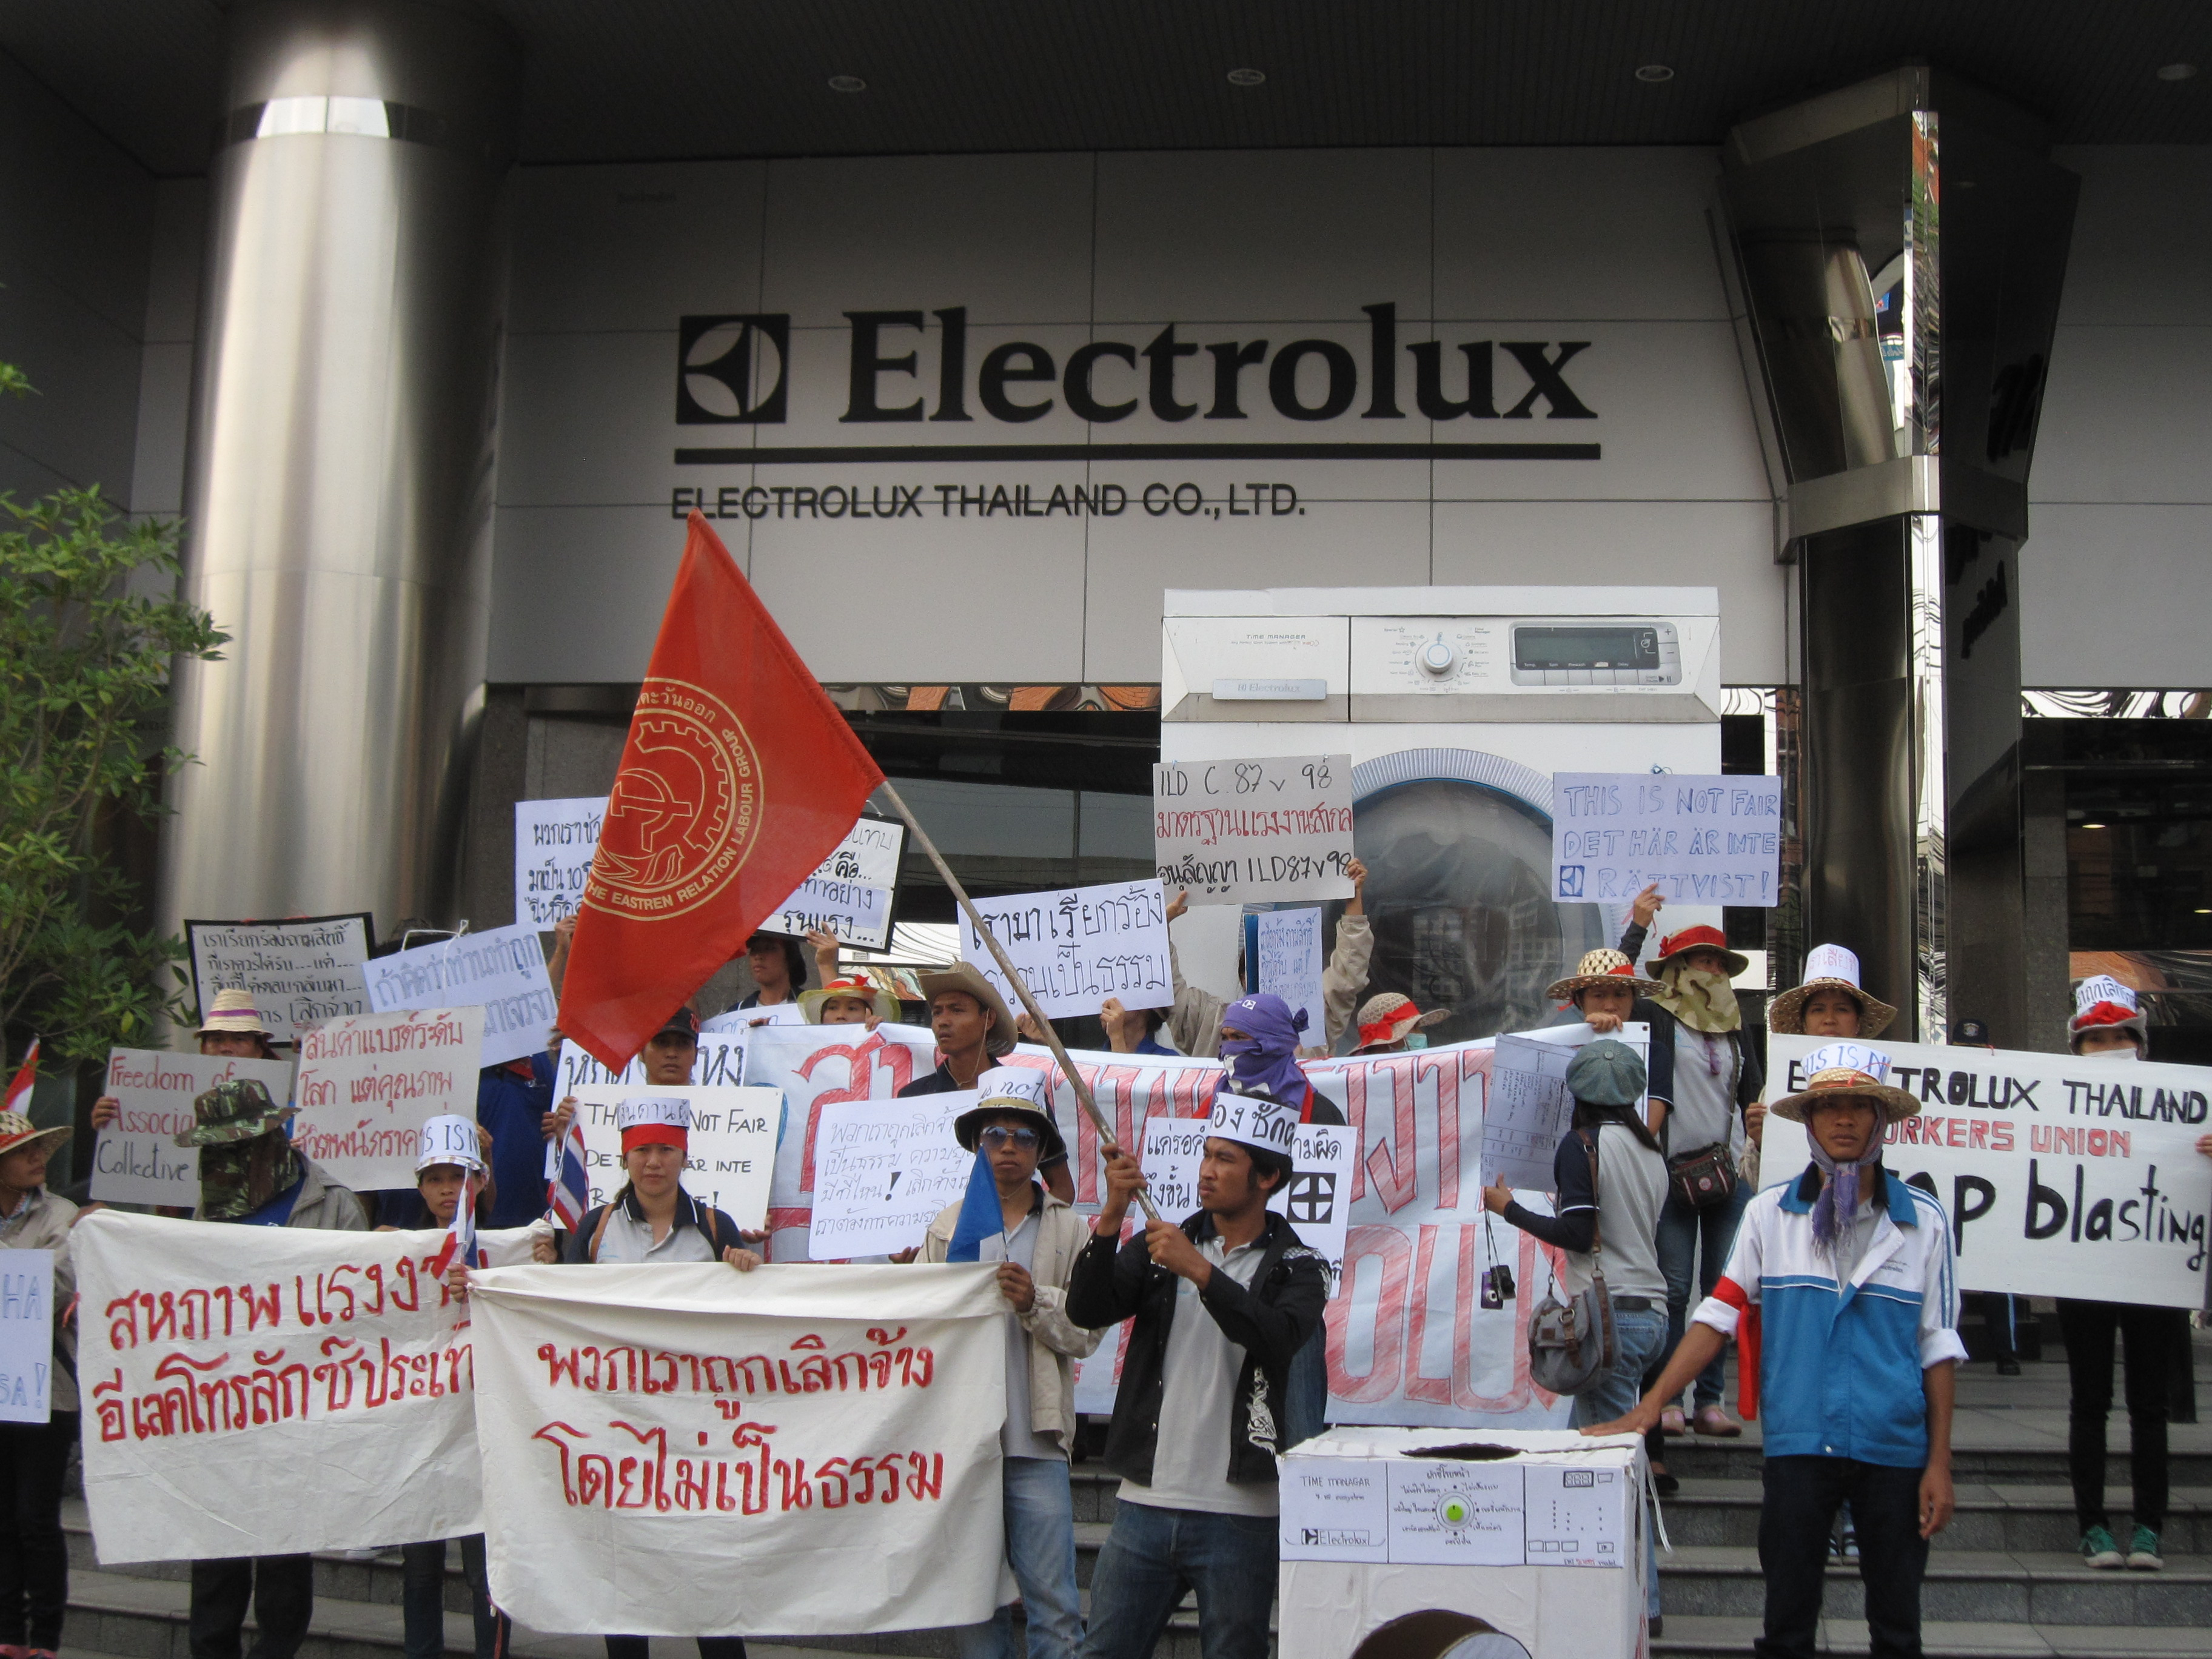 Thai Electrolux Workers Fight Against Dismissal Industriall